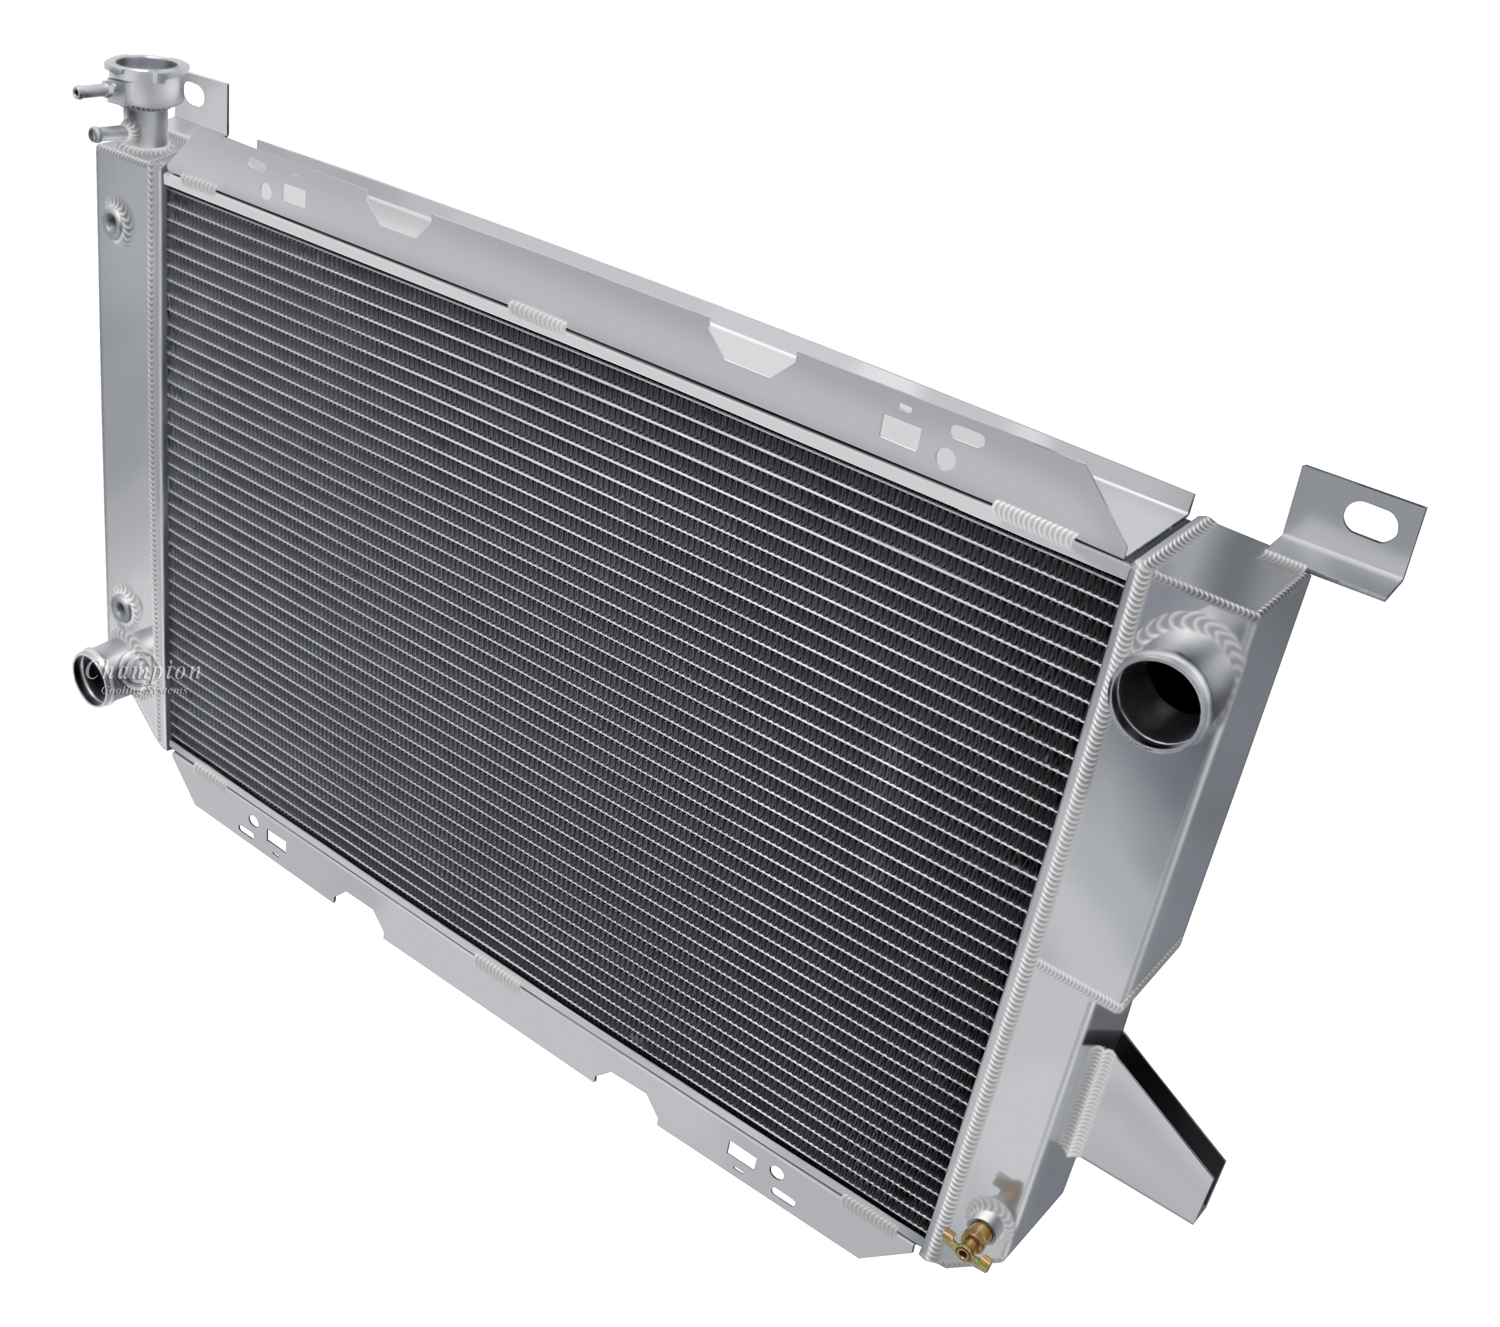 4 Row All Aluminum Performance Radiator For 1964-88 Chevy//Buick Cars